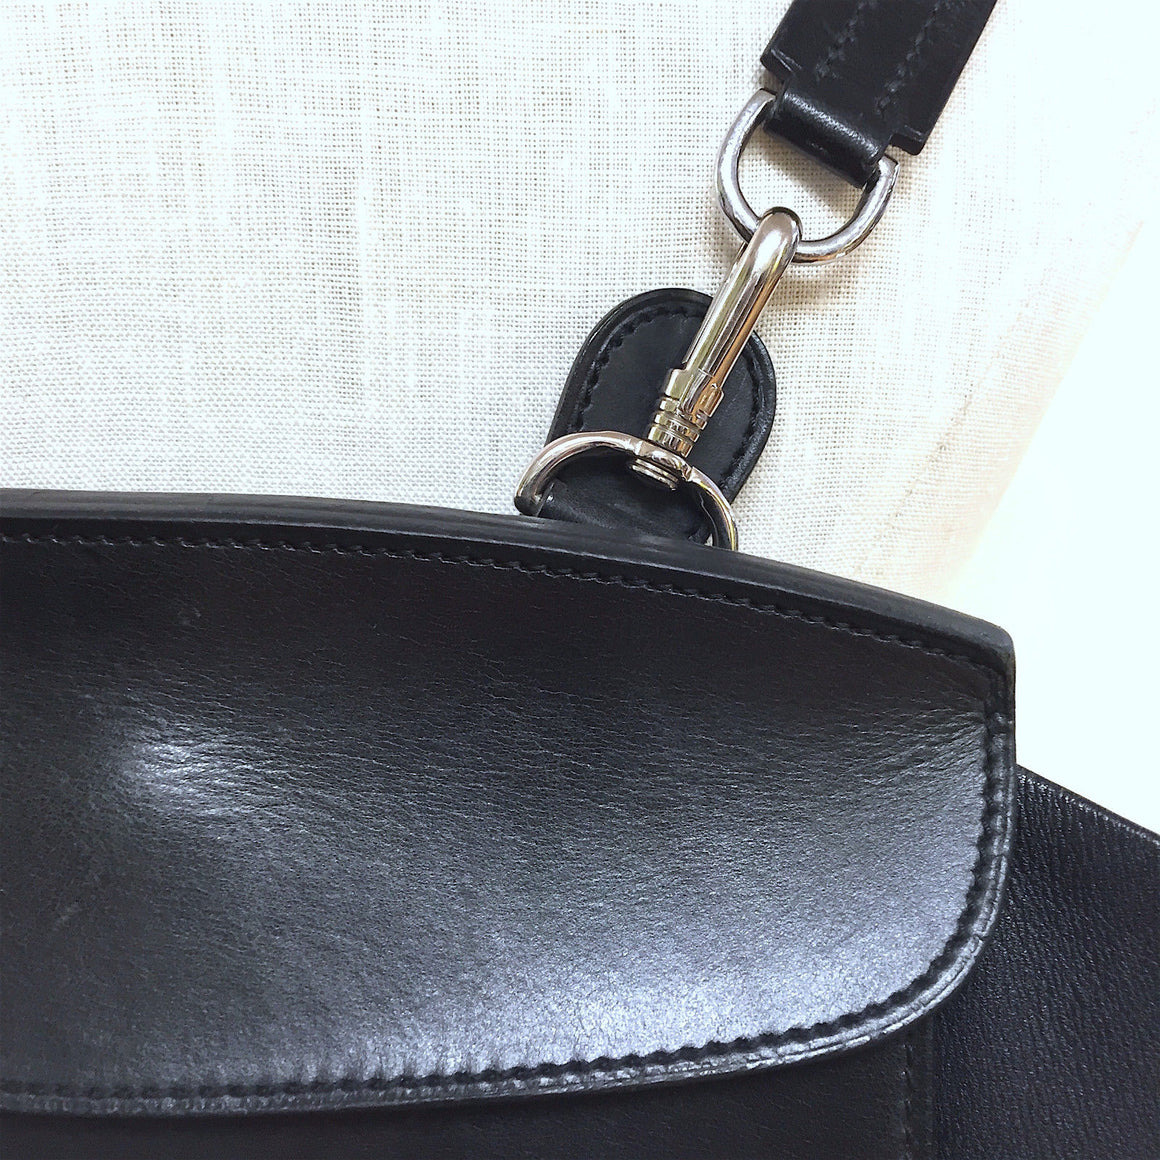 bisbiz.com HERMES Vintage Black Leather Palladium Sellier H/W Back-Pack/Shoulder Bag - Bis Luxury Resale